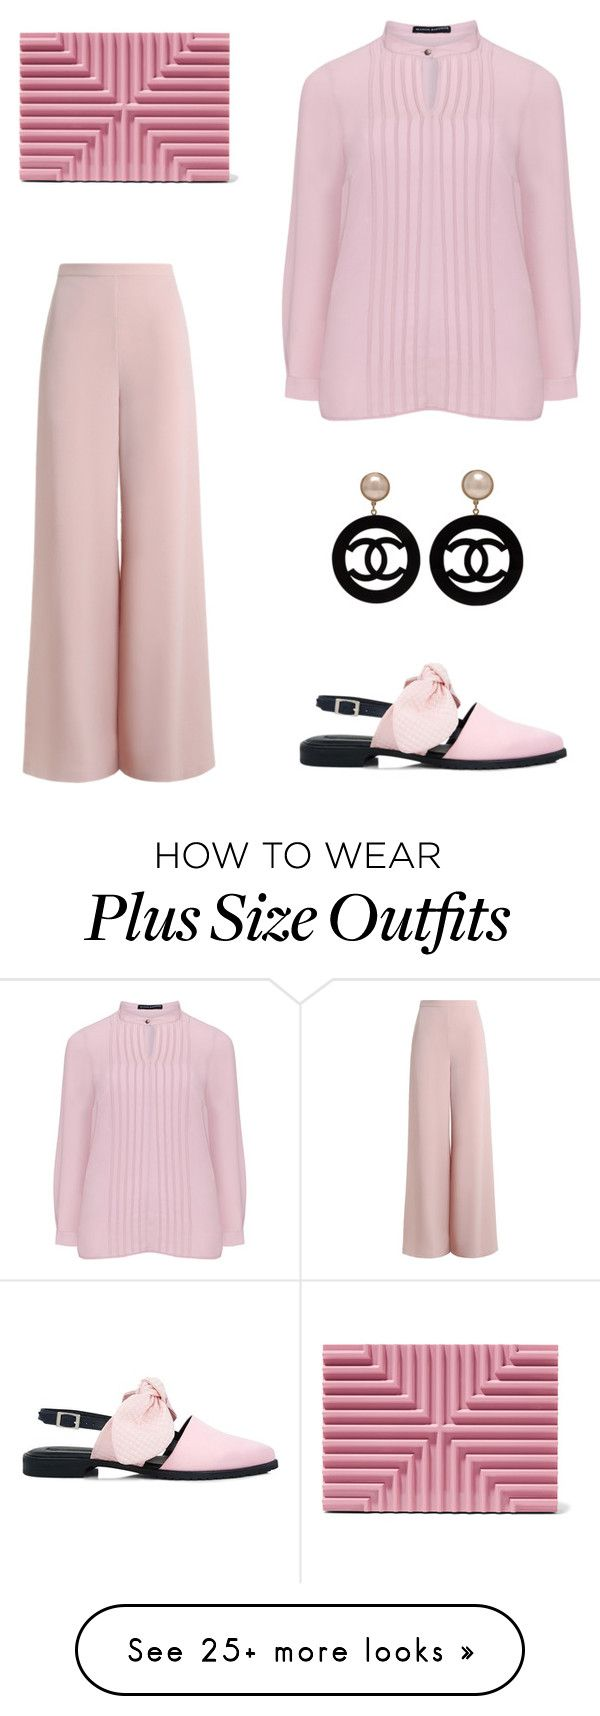 """""""Без названия #2537"""" by xeniasaintp on Polyvore featuring Lee Savage, Zimmermann, Manon Baptiste, Mother of Pearl and Chanel"""